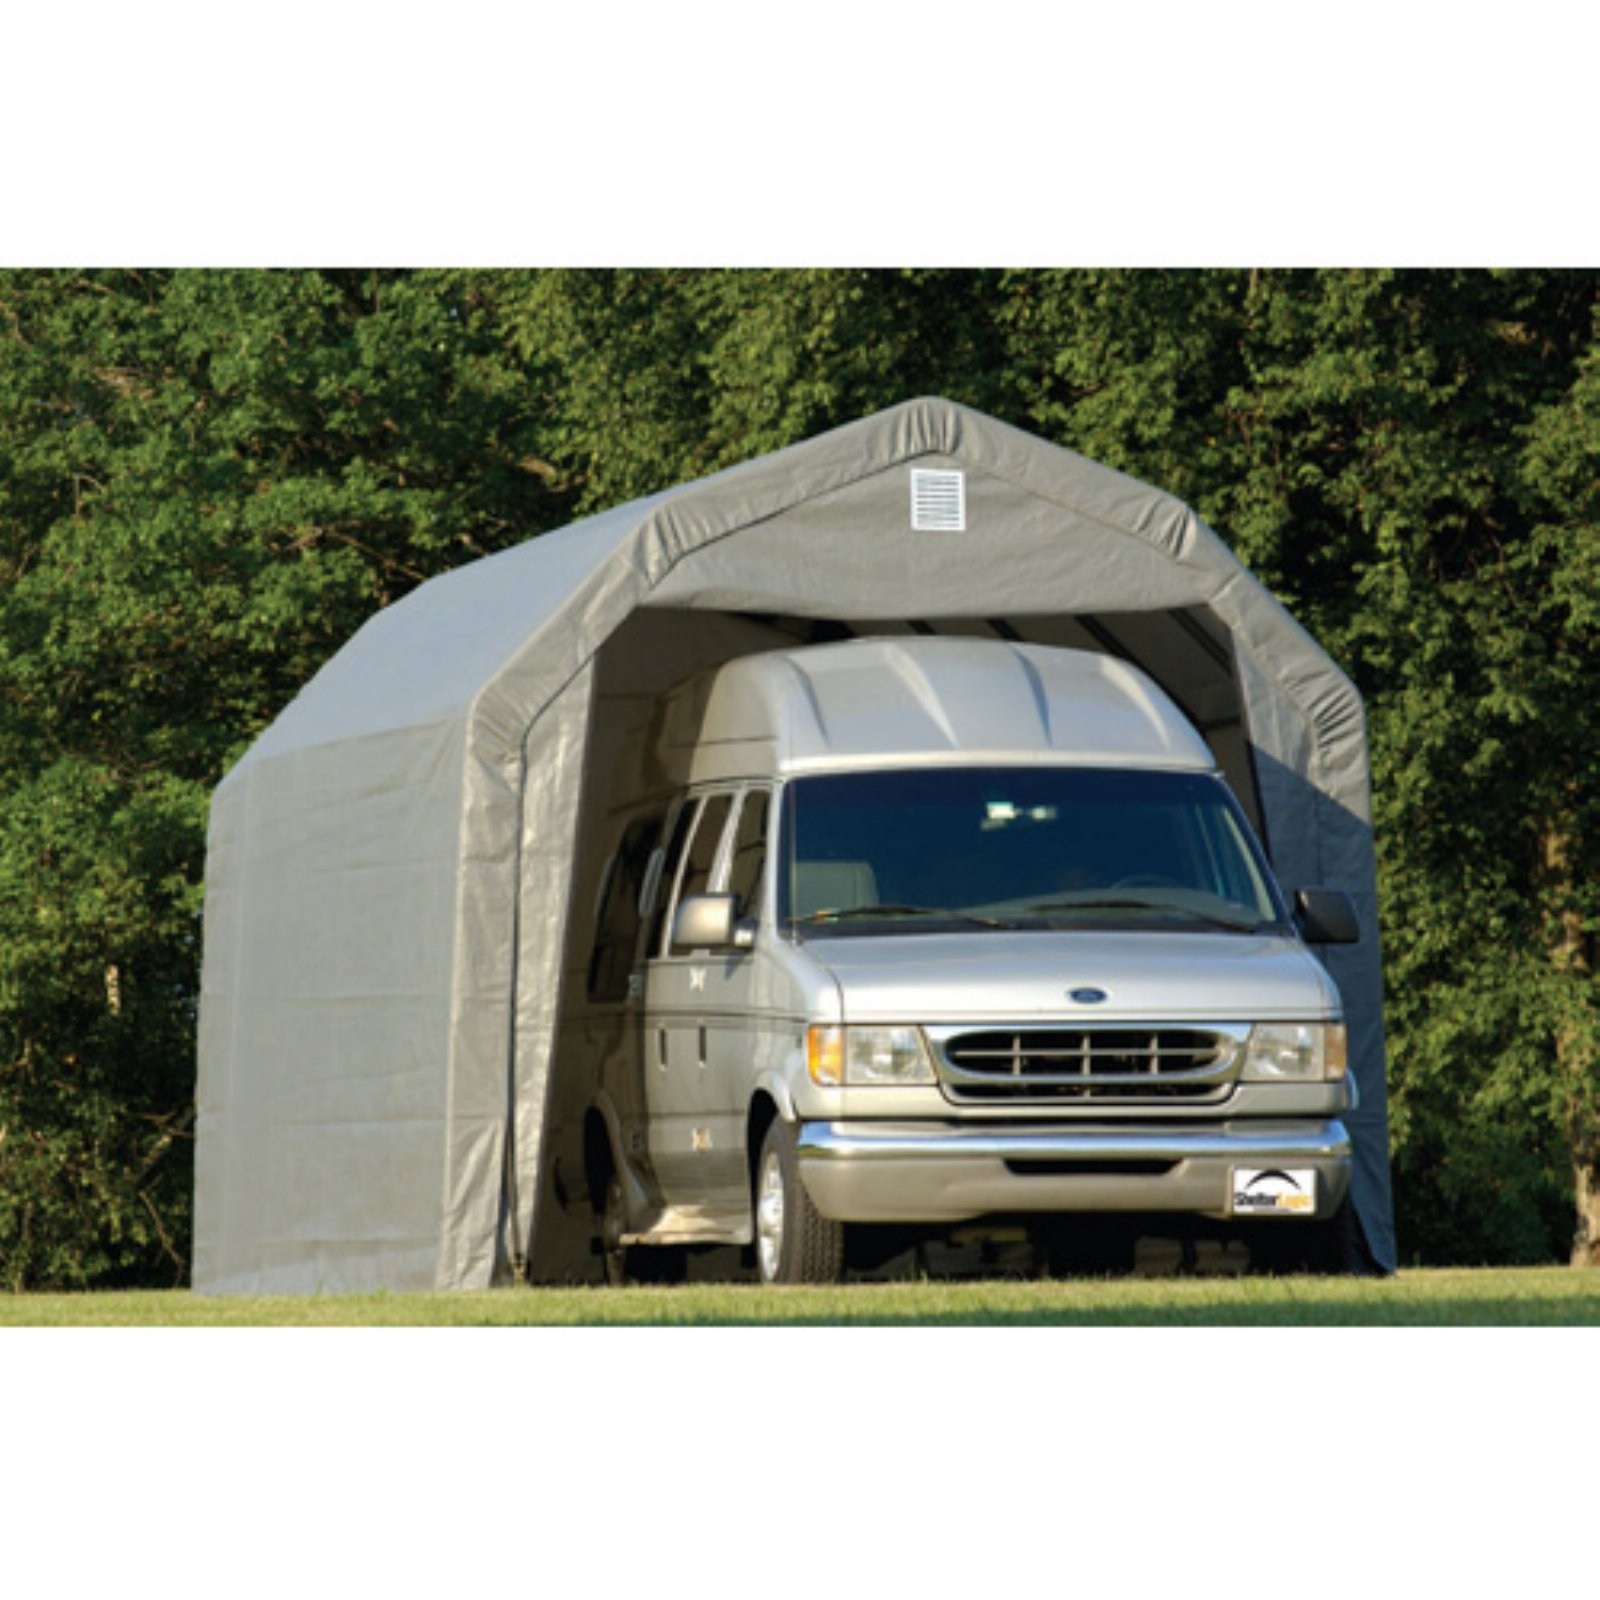 12' x 24' x 9' Barn Style Shelter, Green